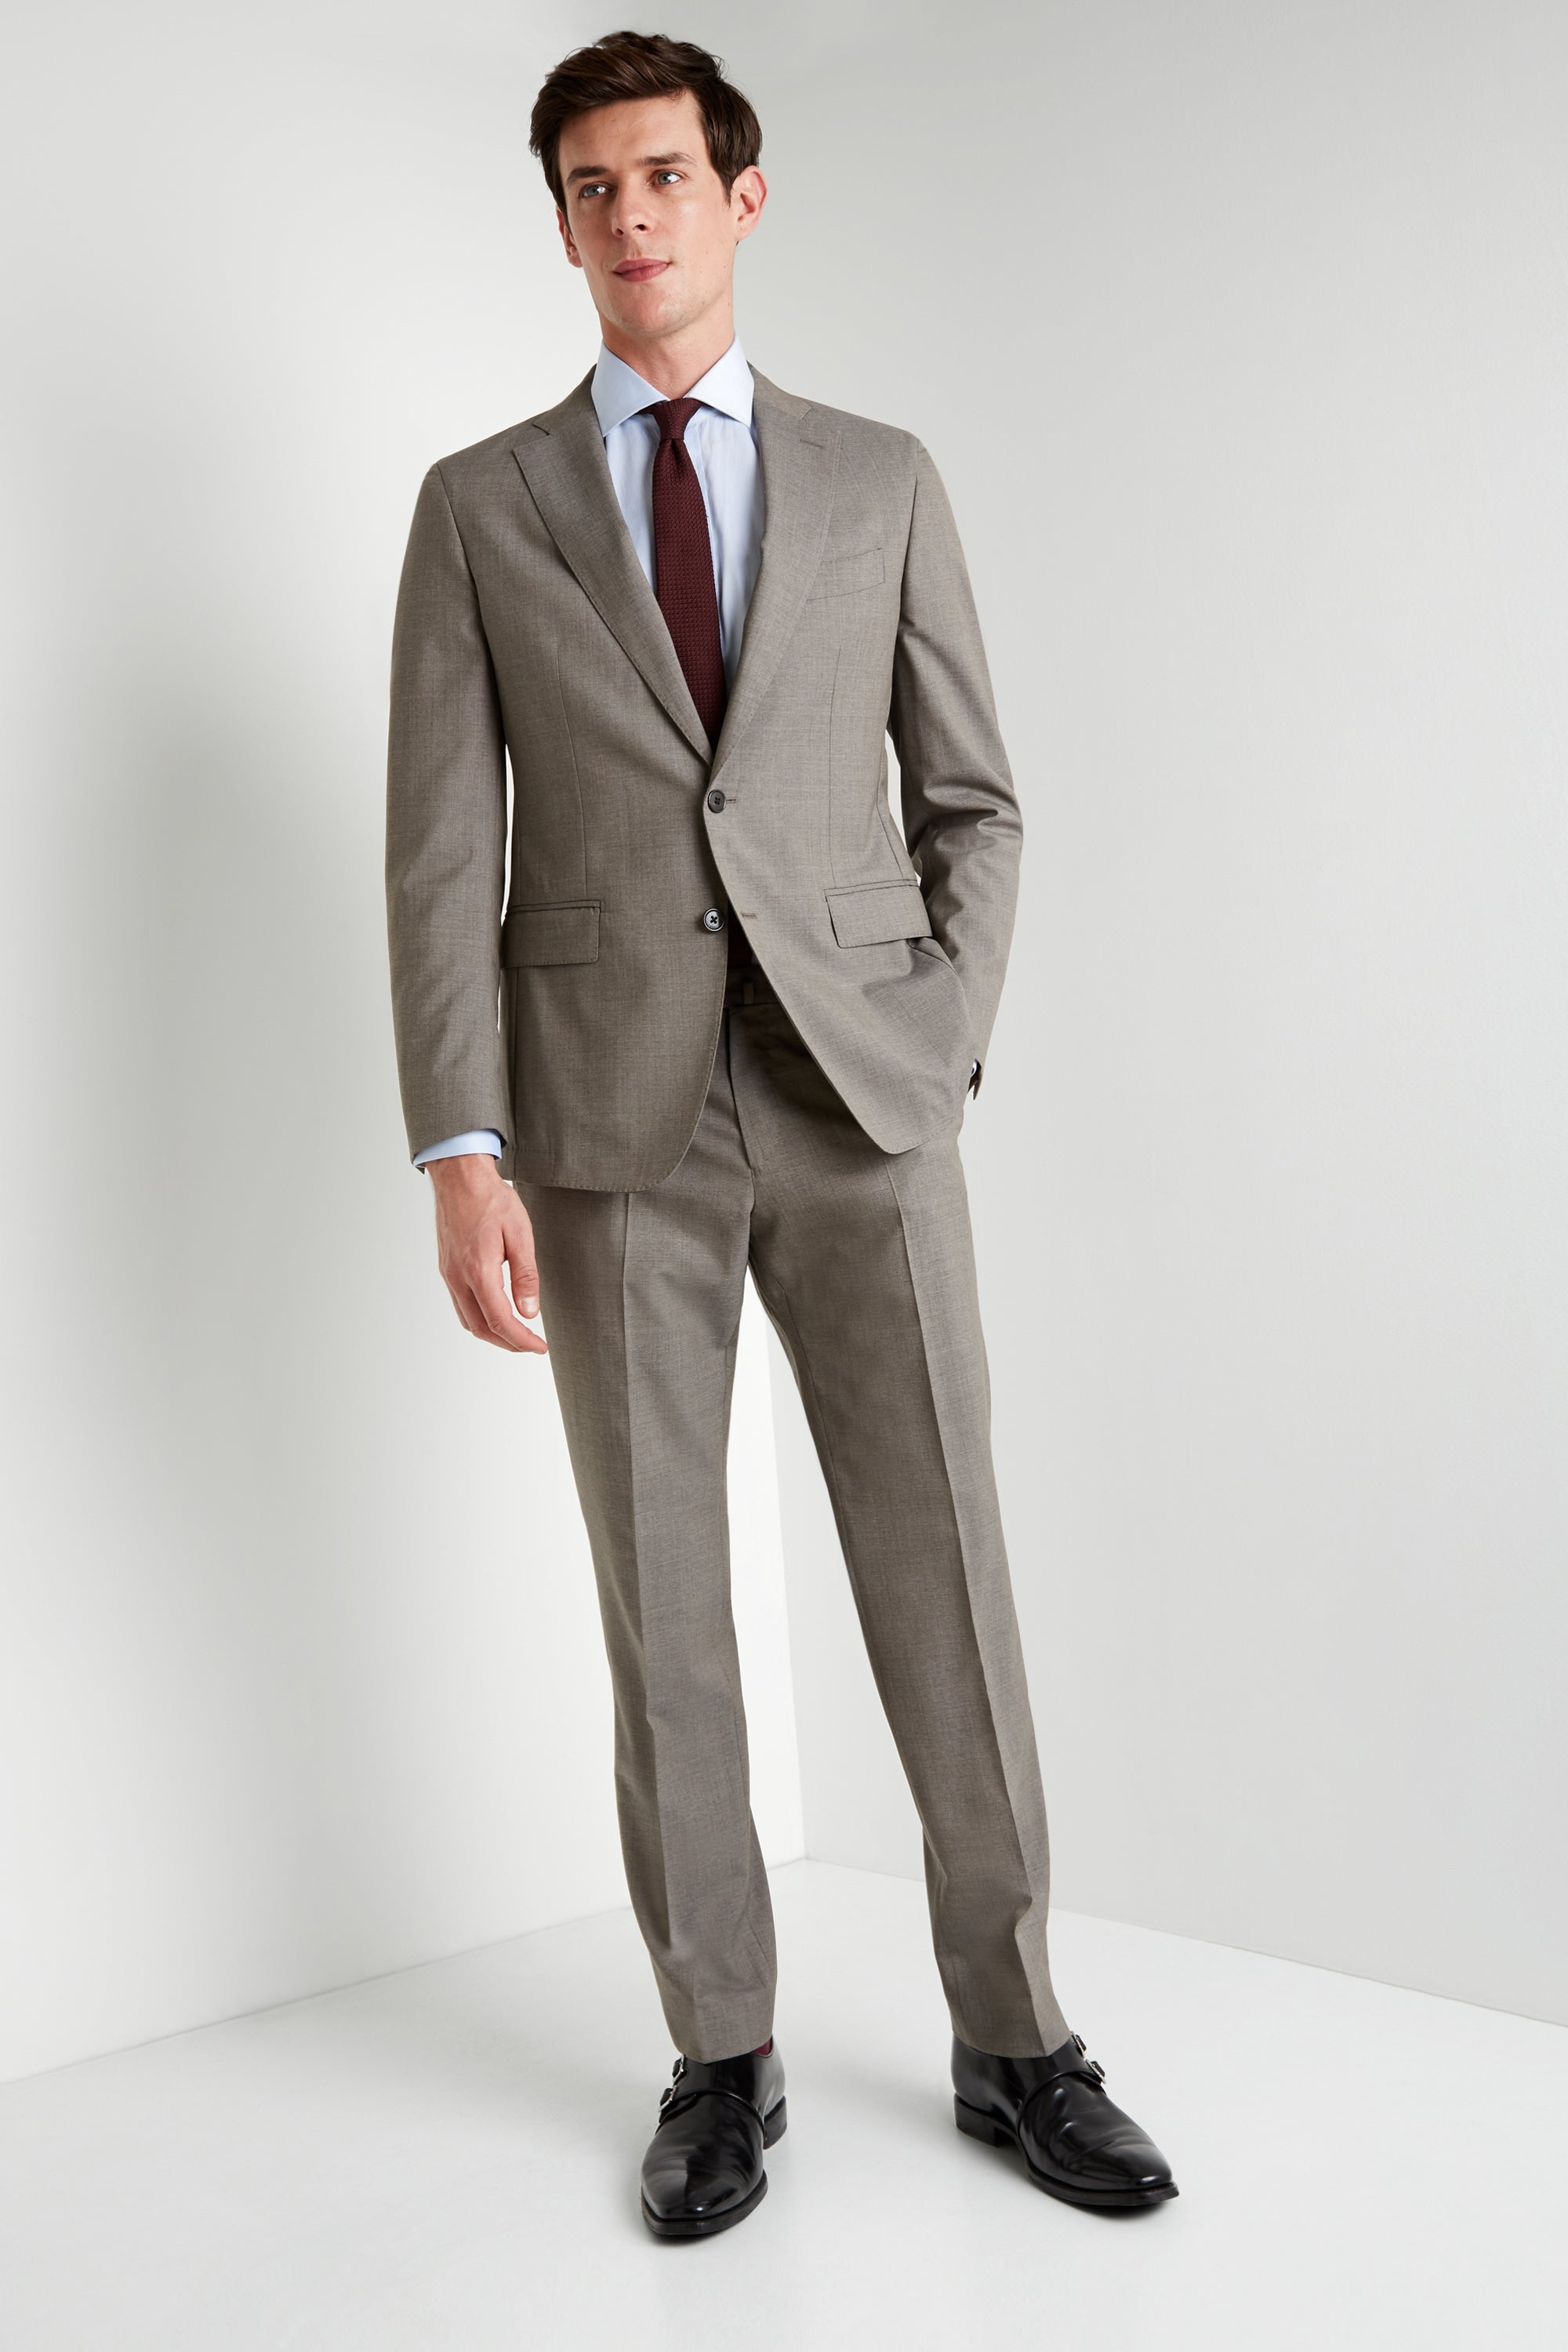 Maxman Prive Tan Sharkskin Suit